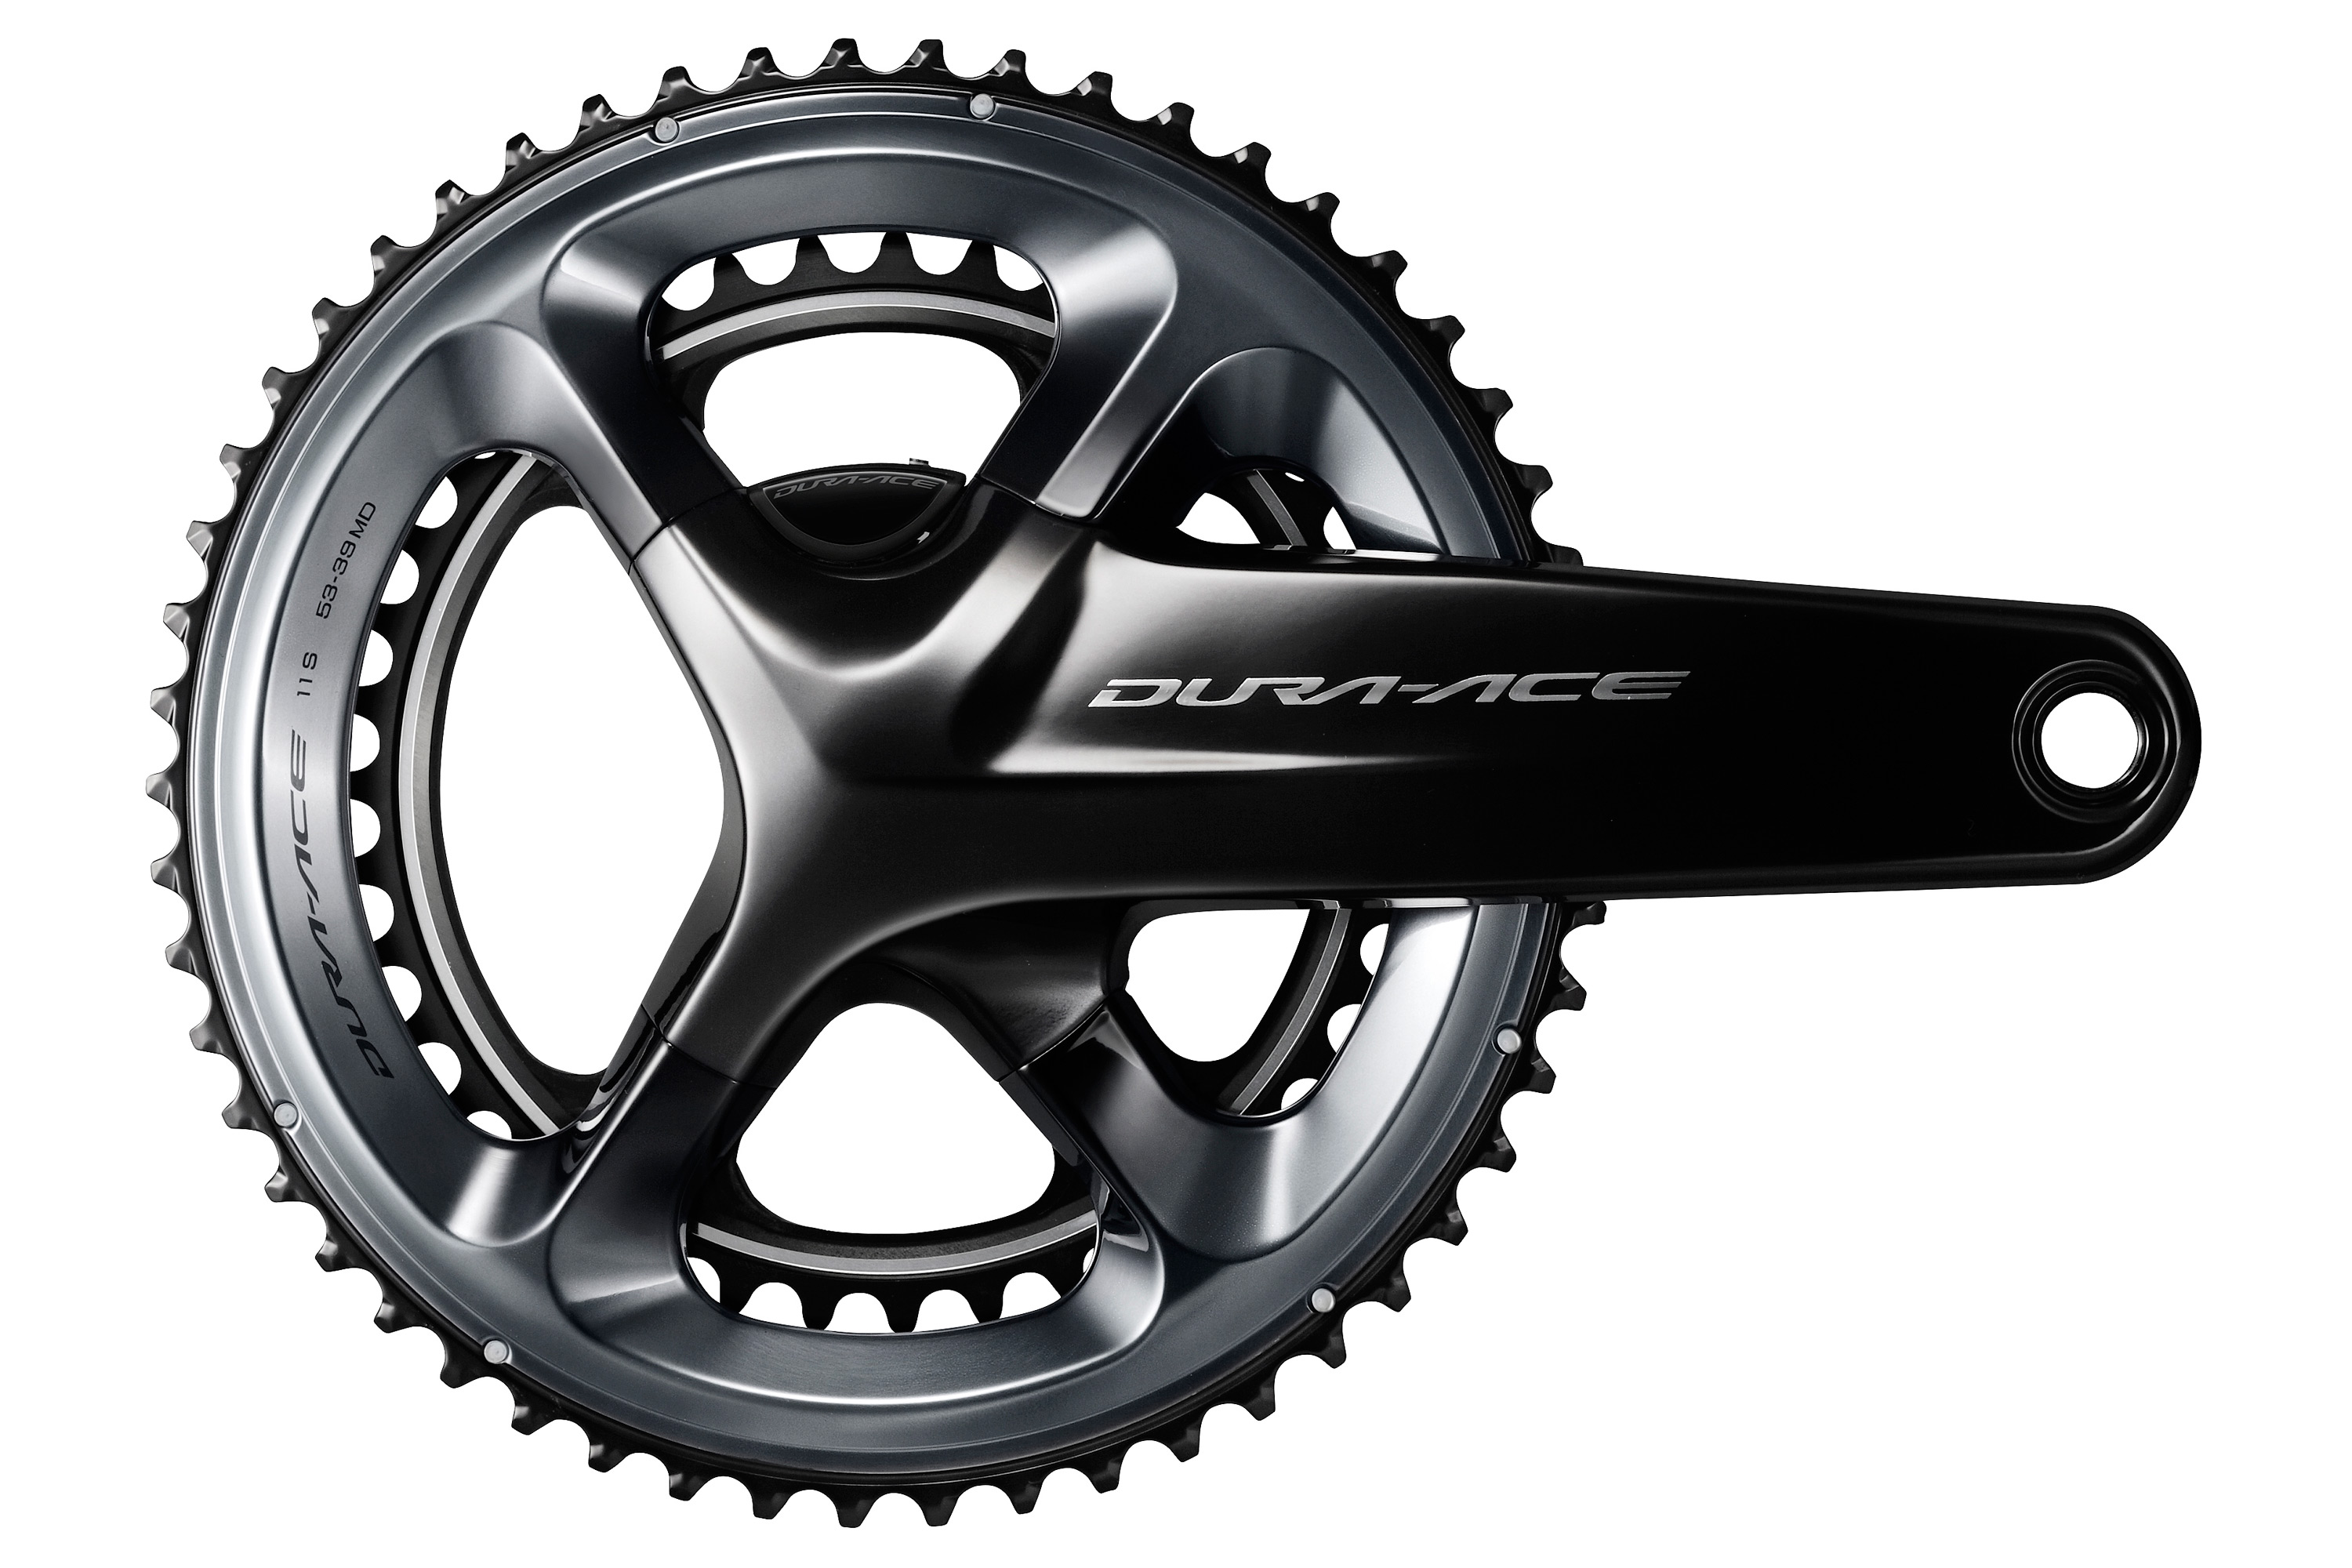 Shimnao_Dura-Ace-R9100_road-component-group_FC-R9100-P_integrated-power-meter-crankset